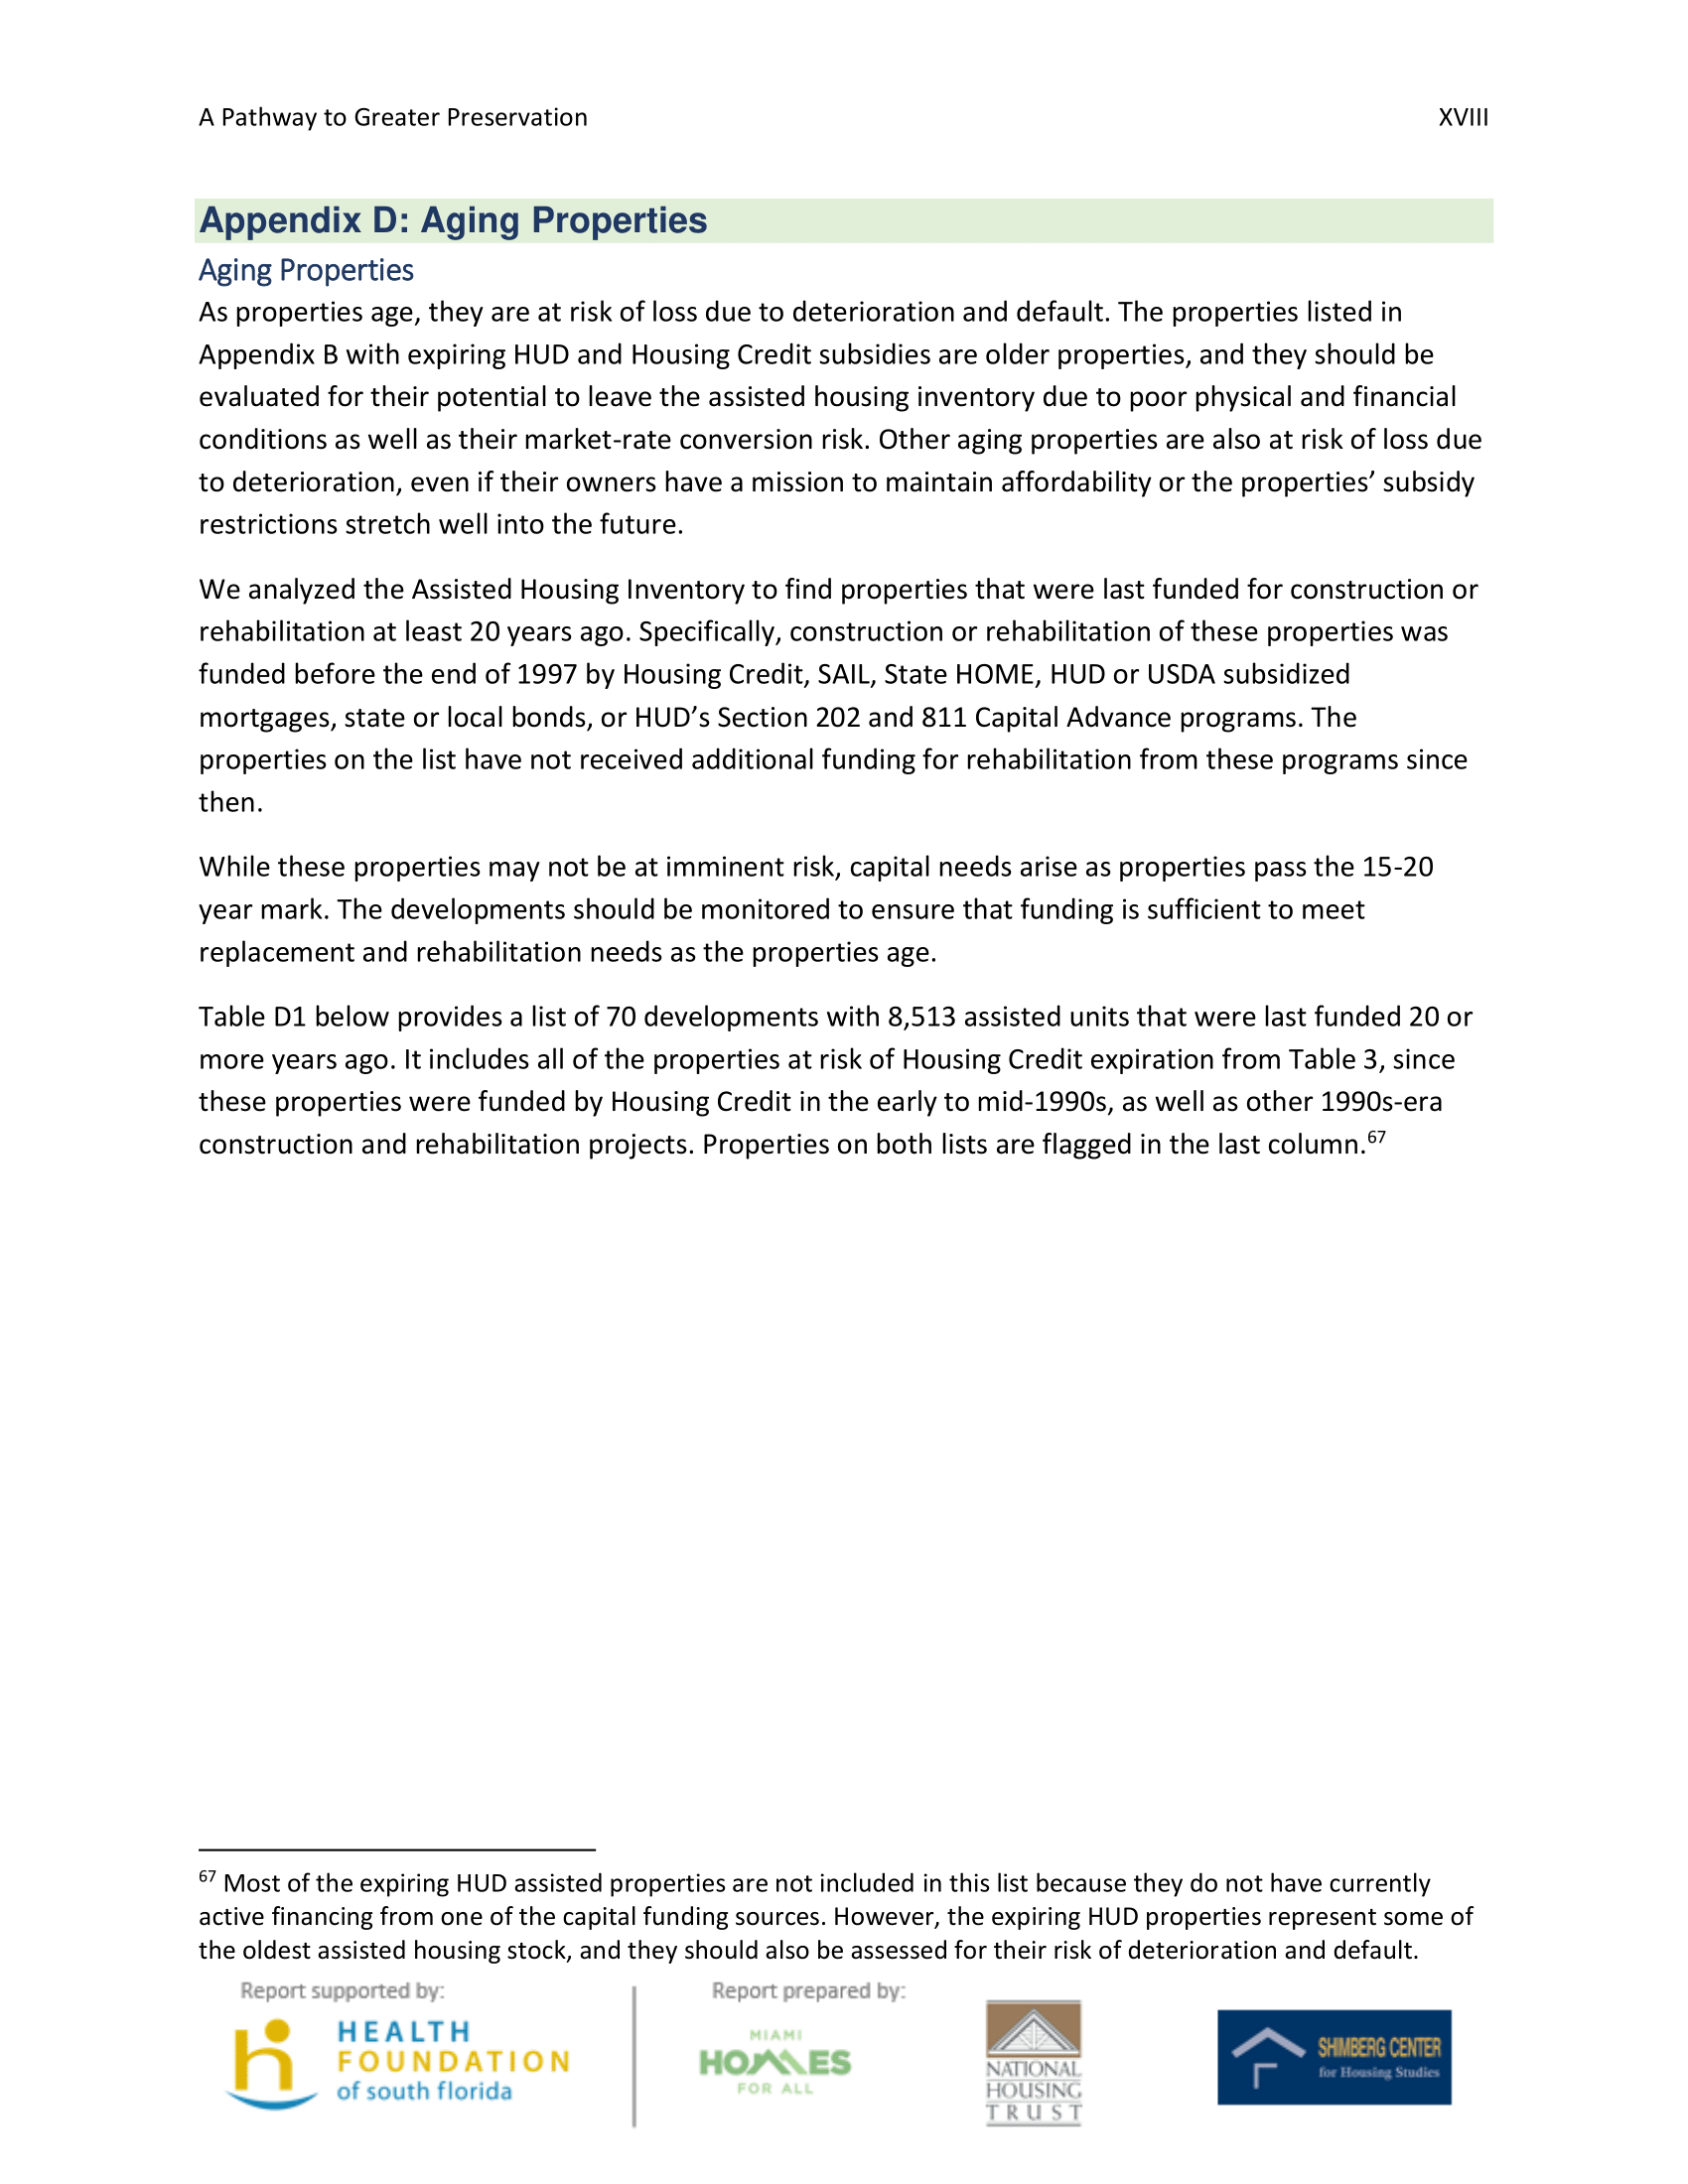 A Pathway to Greater Preservation - February 2018-64.png